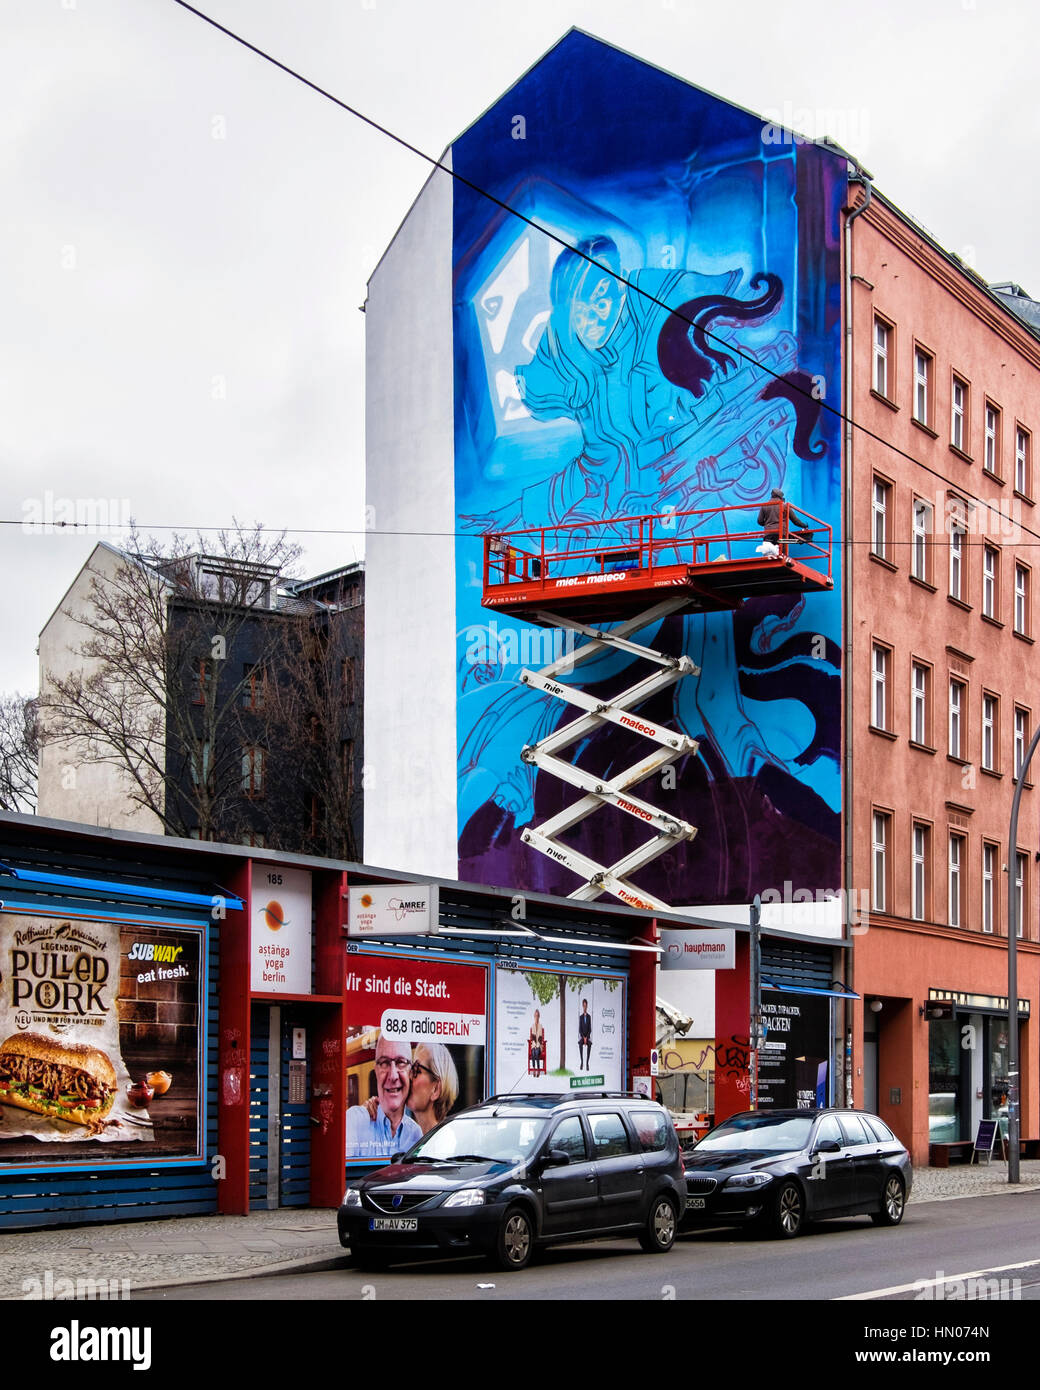 Berlin, Mitte. Commercial artist on scissor lift working on giant mural advertisement on building. - Stock Image